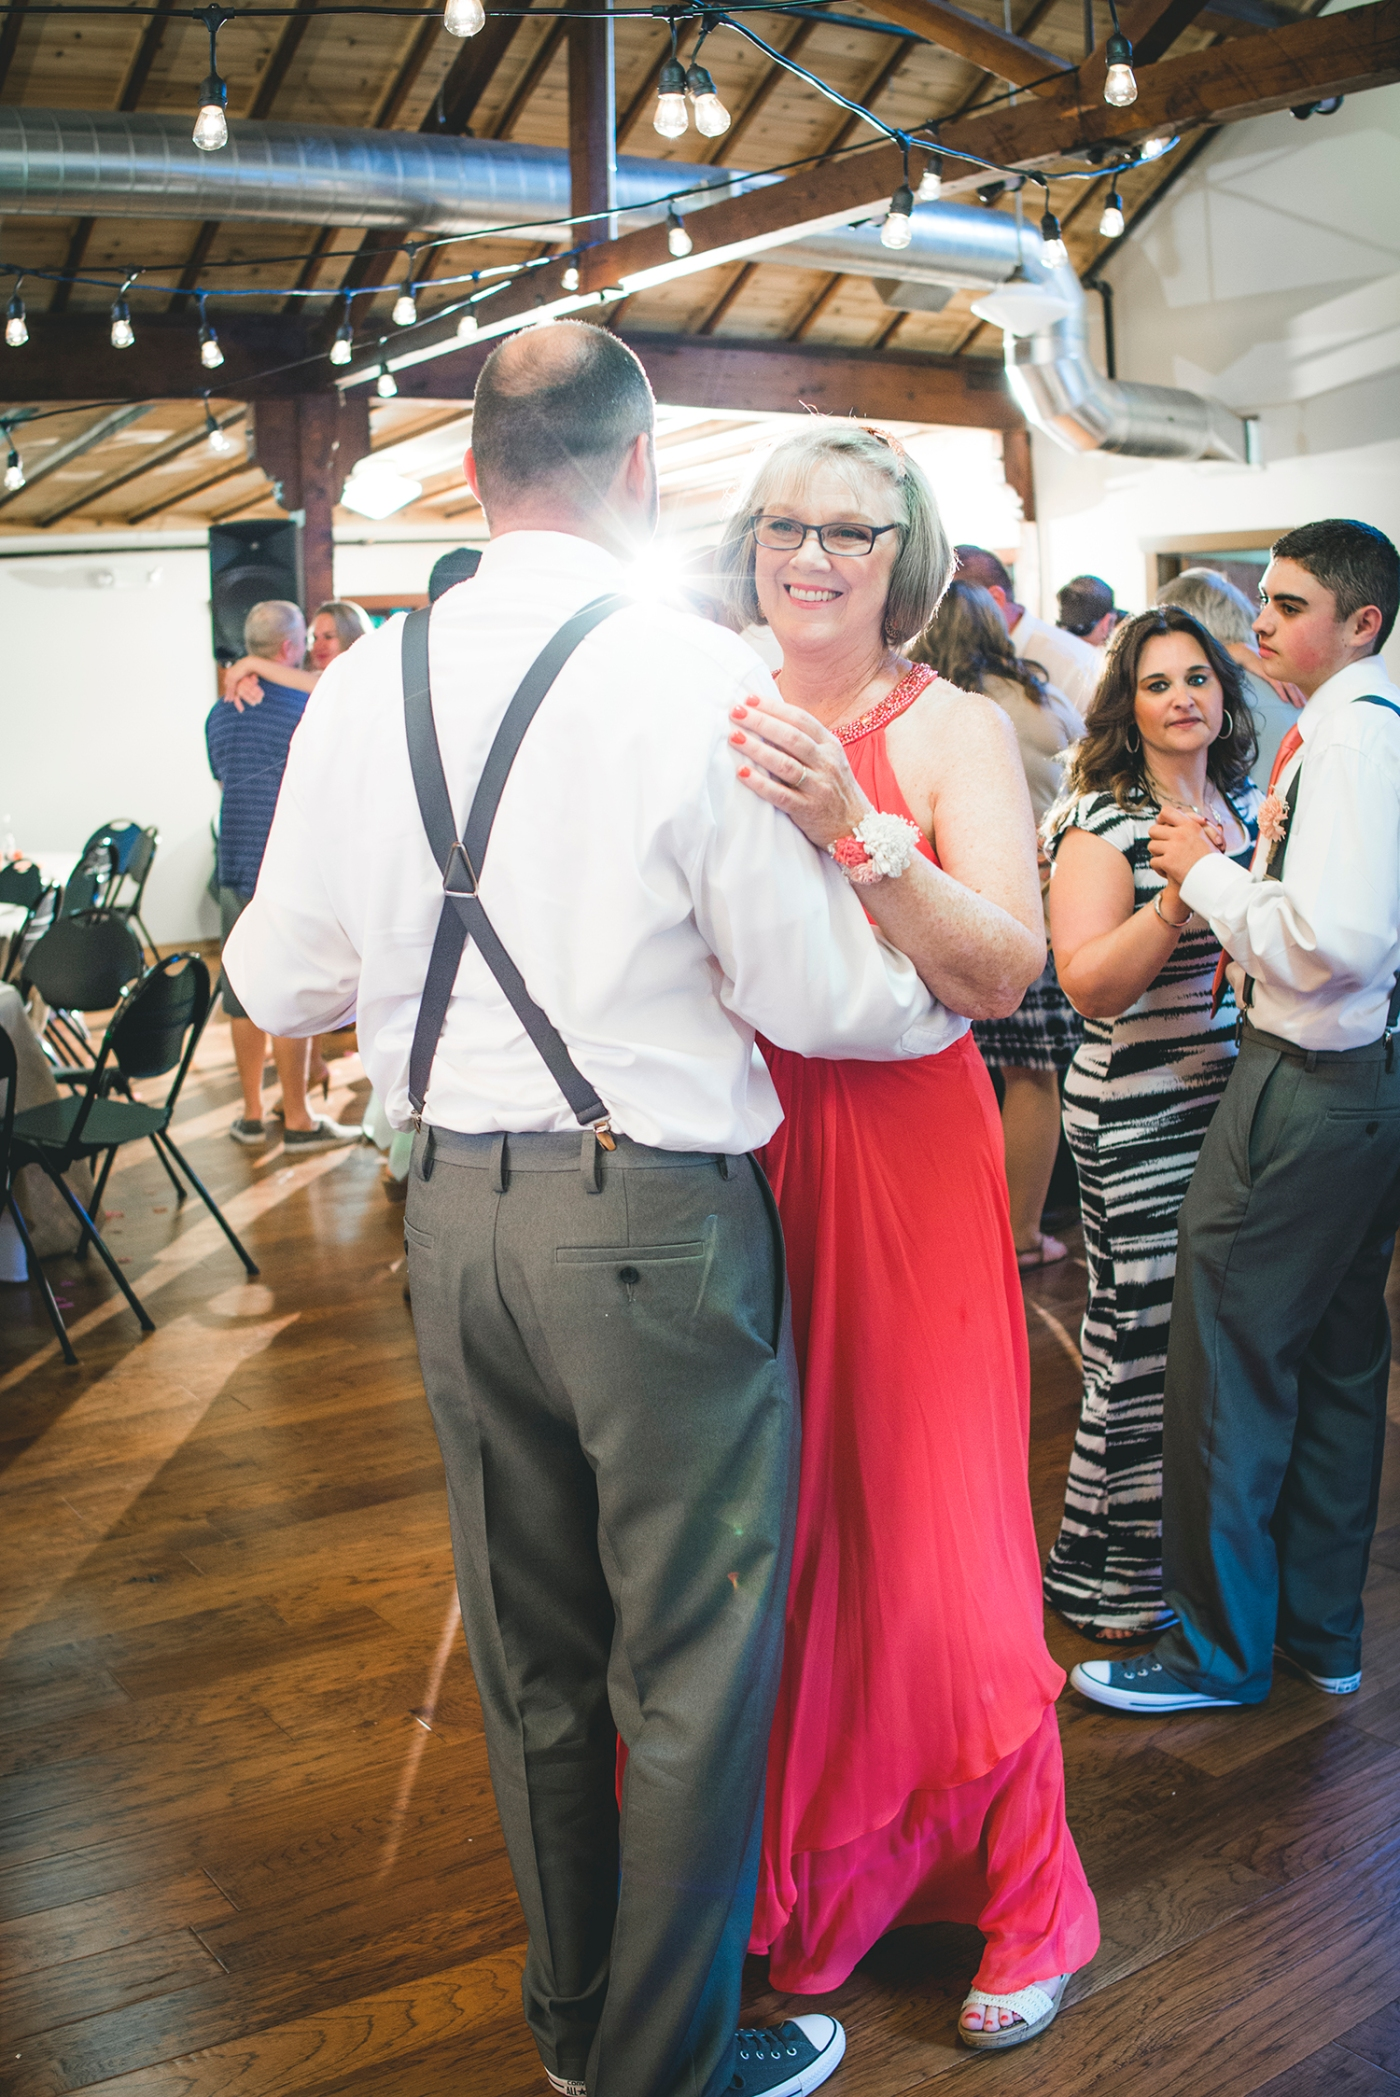 Jane_Speleers_Seattle_photography_Katie_and_Steve_2016_Des_Moines_Marina_Wedding_DSC_2330